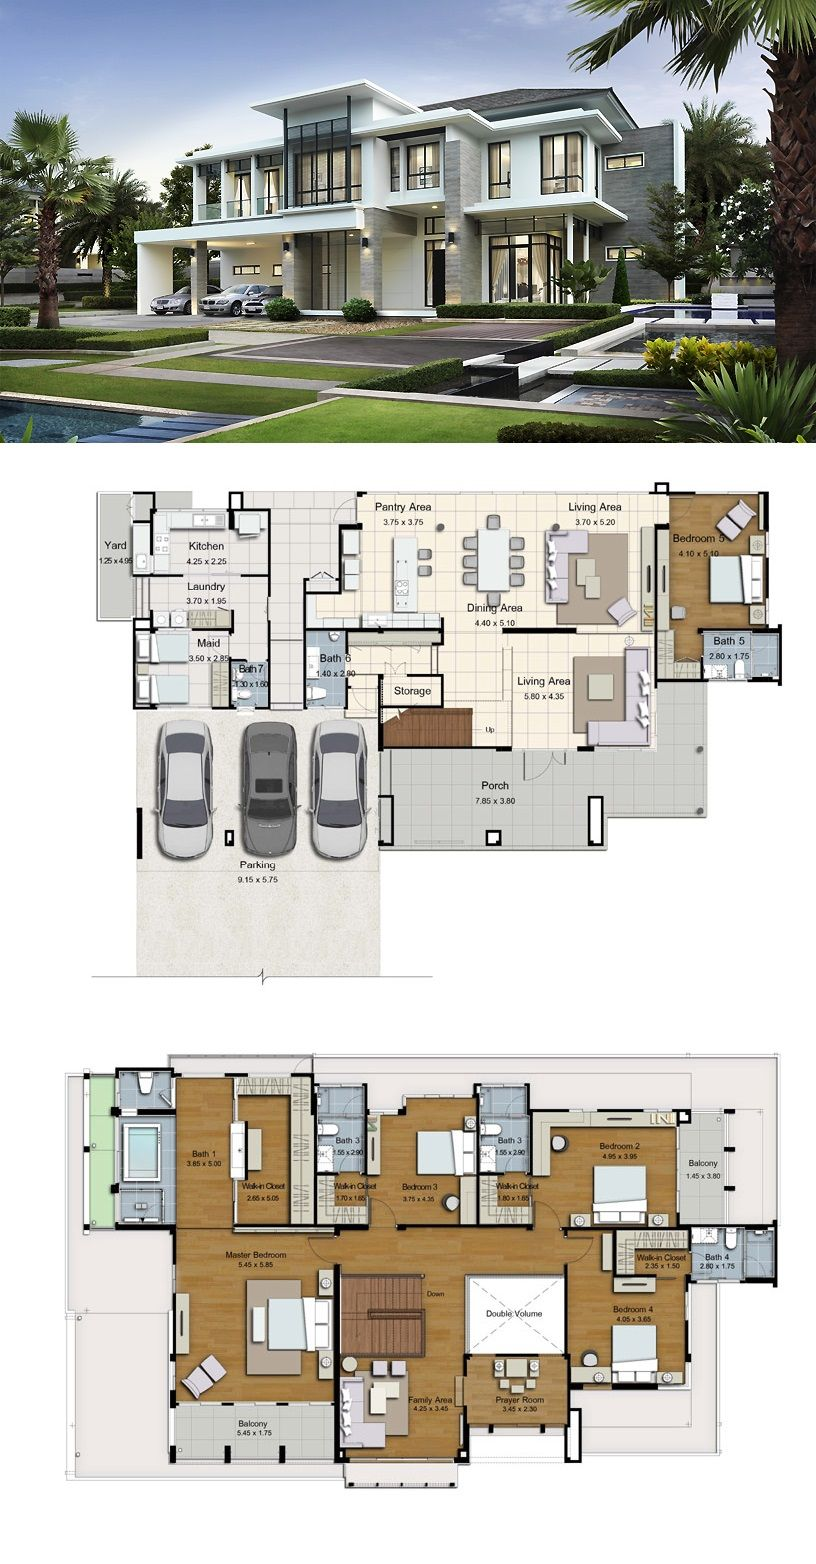 LAND AND HOUSES | Home - Layout in 2019 | House plans, Modern house Very Modern House Big Plans on glass modern house plans, modern luxury home plans, modern lake house plans, big barns plans, big open floor plans, modern craftsman house plans, modern architecture house plans, modern hillside home plans, modern small house plans, big chapel plans, big house floor plans, modern country house plans, post modern house plans, big table plans, modern bungalow house plans, ultra modern house plans, big modern houses in new jersey, modern minimalist house plans, open modern house plans,